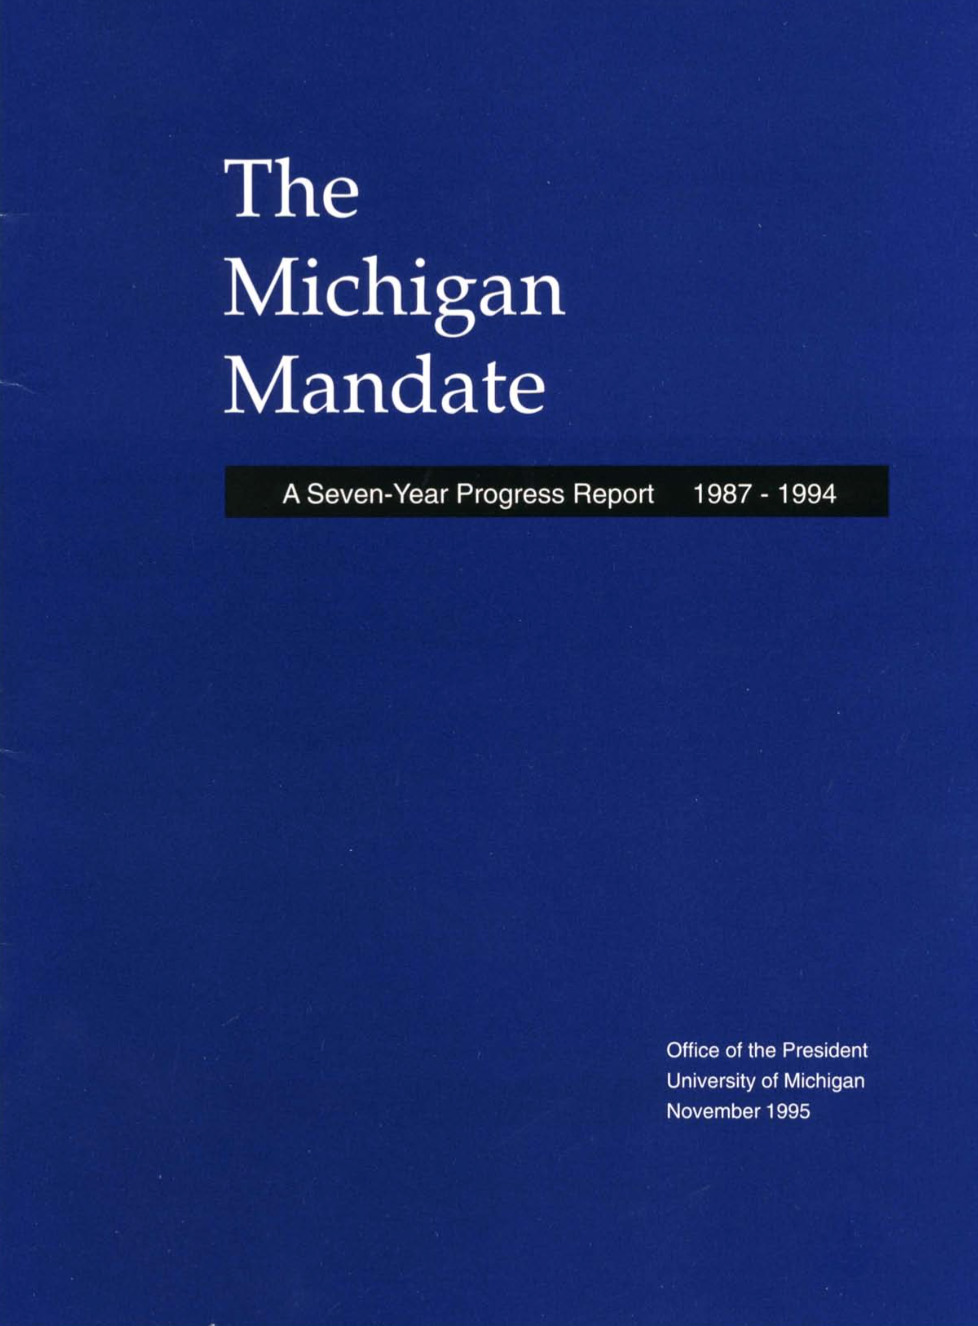 Michigan Mandate 7 Years Book cover